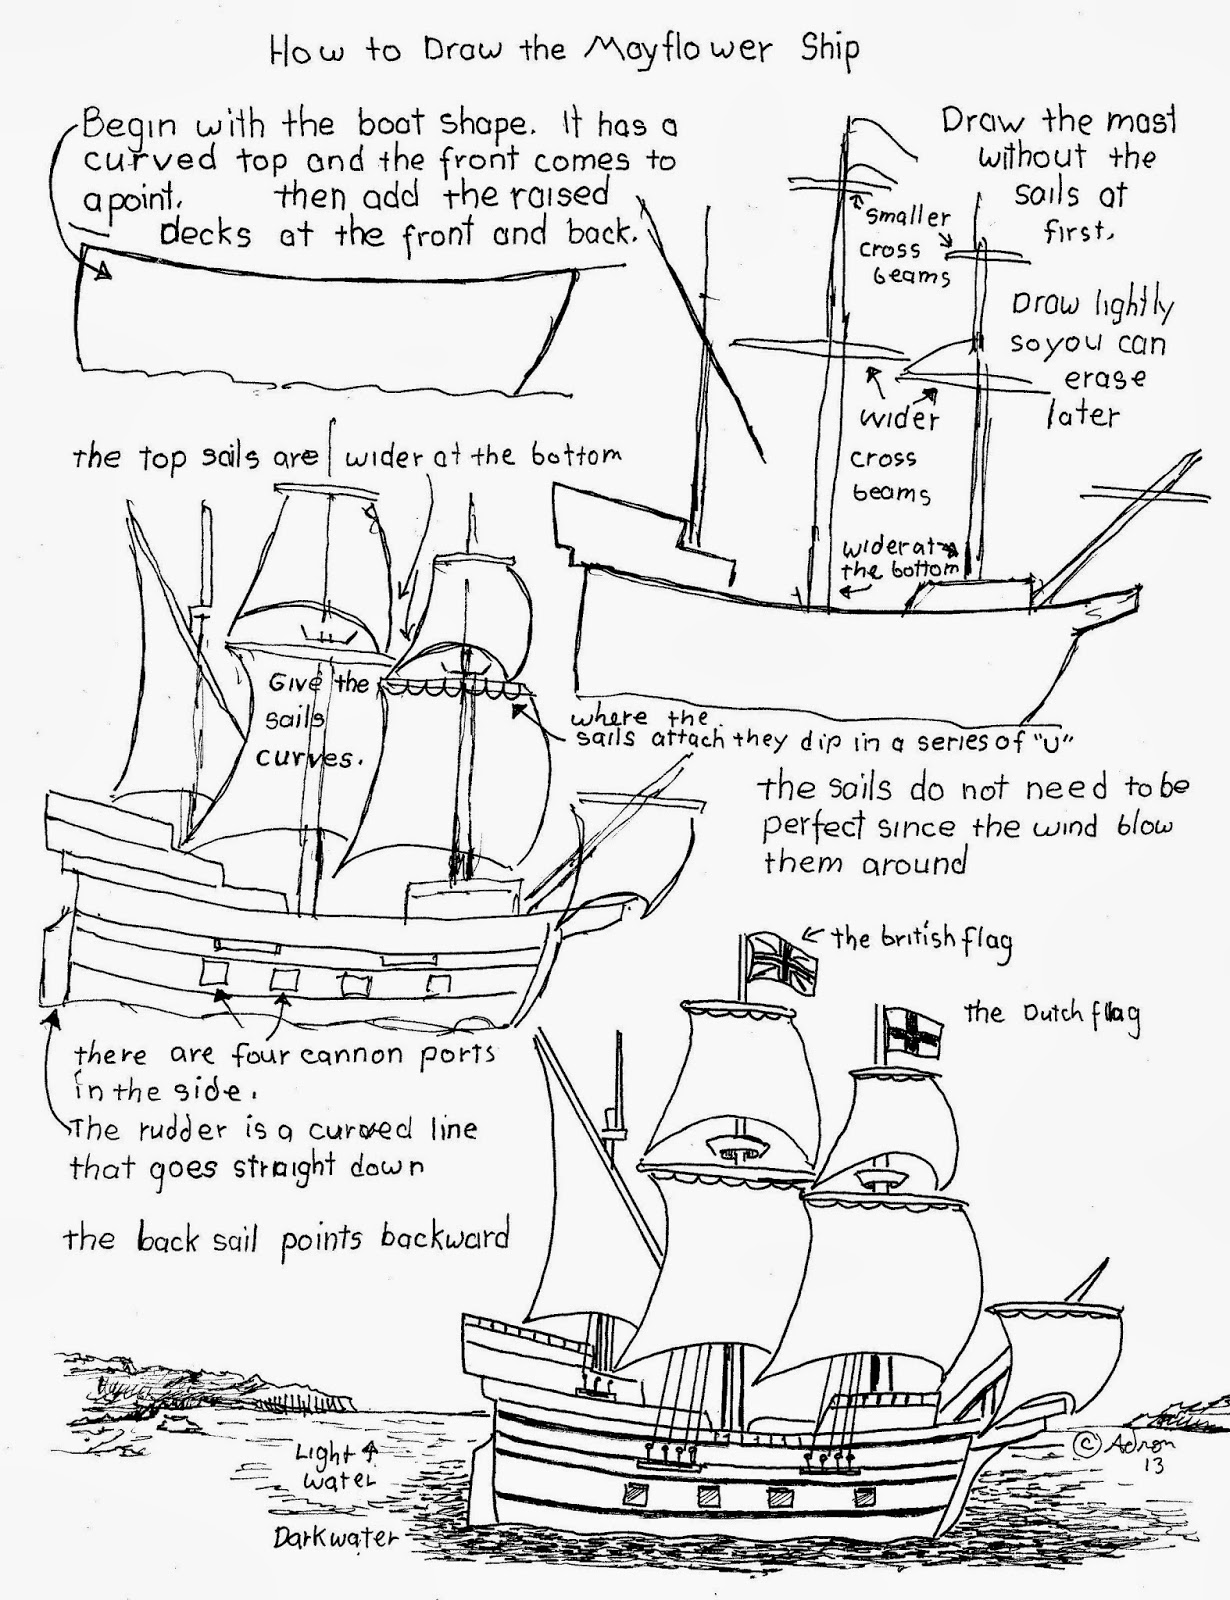 Worksheets How To Draw Worksheets how to draw worksheets for the young artist pilgrim ship mayflower free worksheet